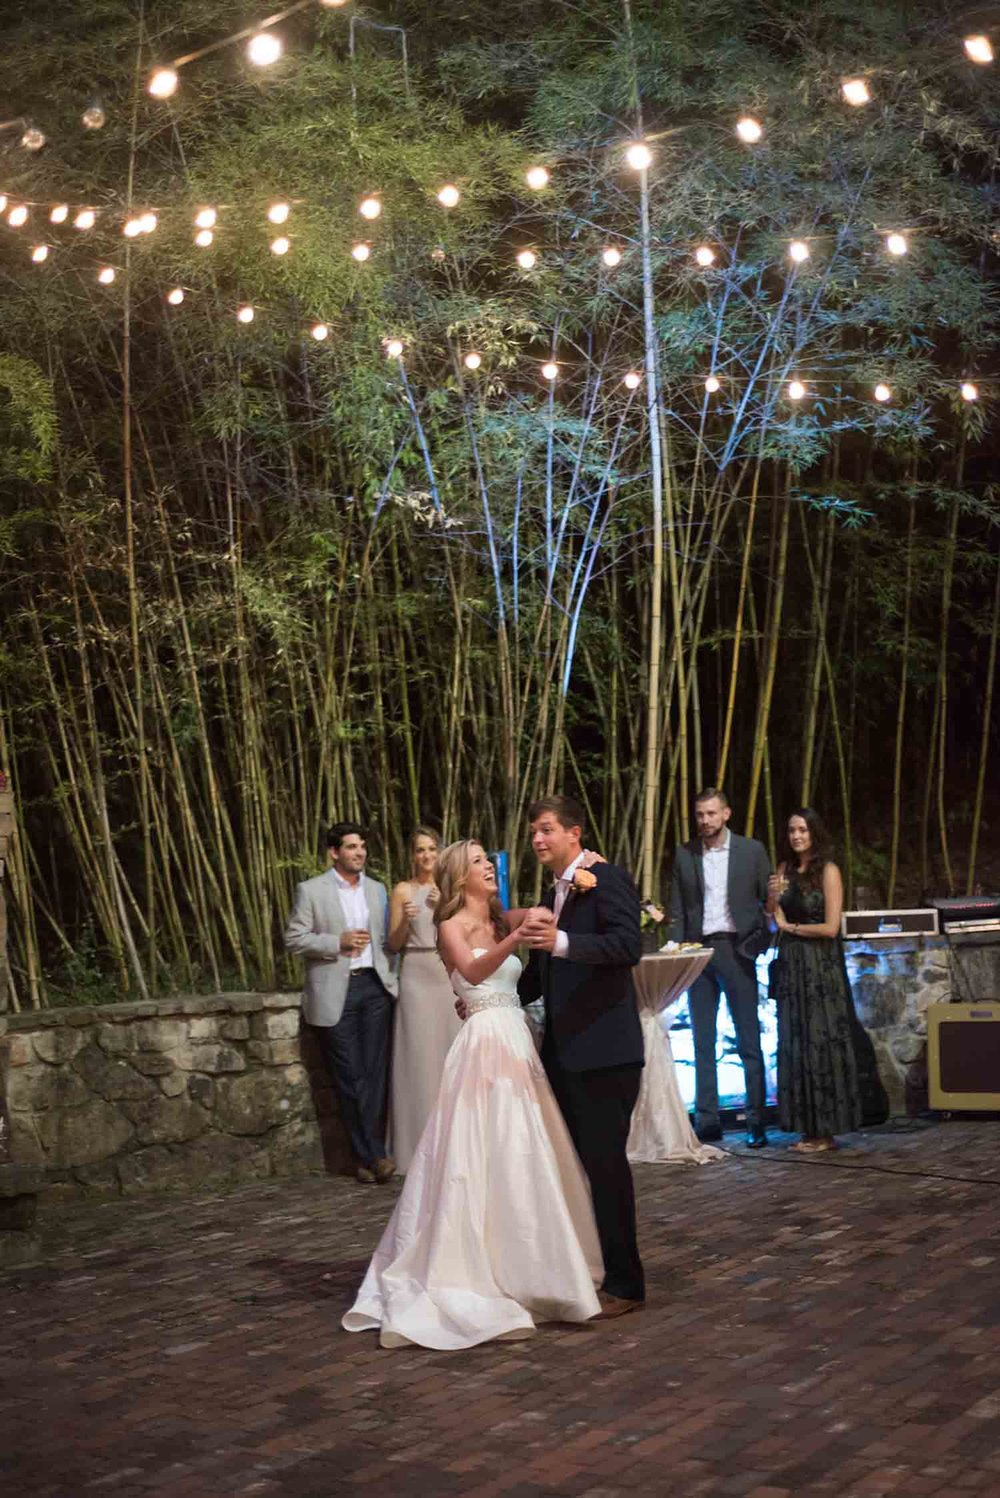 A simple strand of lights strung high at Sarah Beth and Fate's reception creates a fairy tale setting. Photo: Katie Wallace